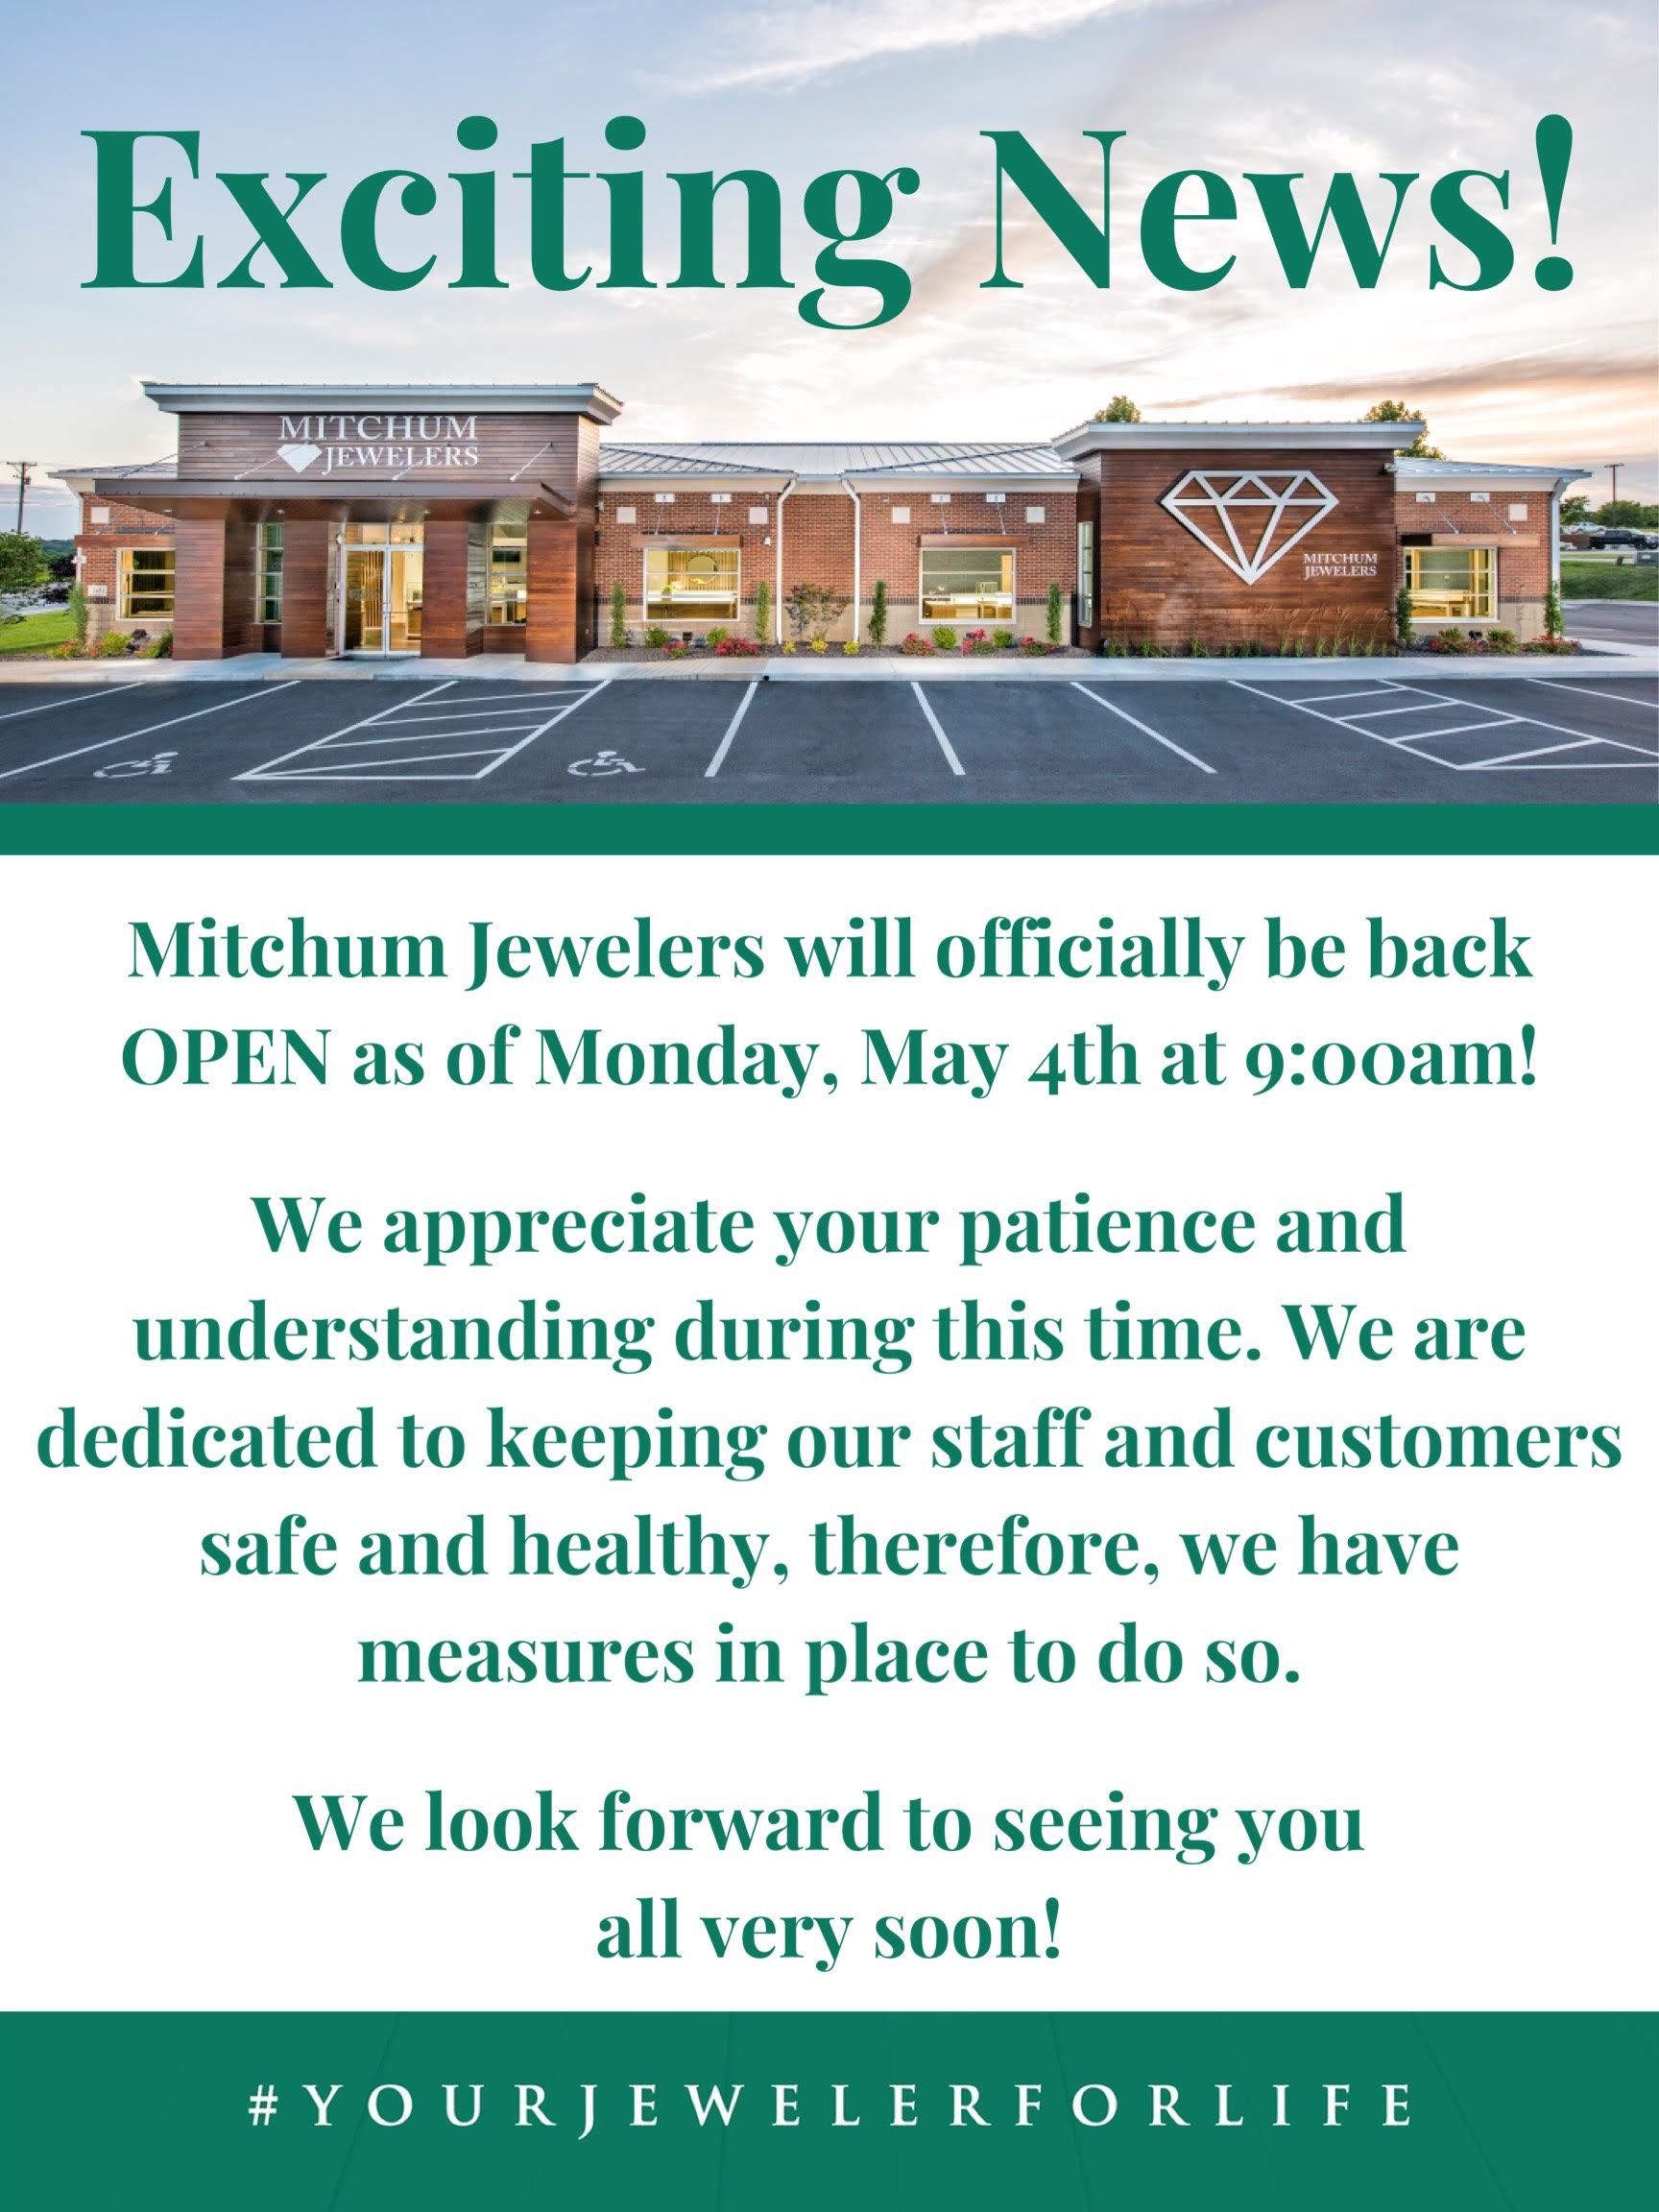 Mitchum Jewelers is Re-Opening Monday May 4th at 9am and resuming normal store hours!